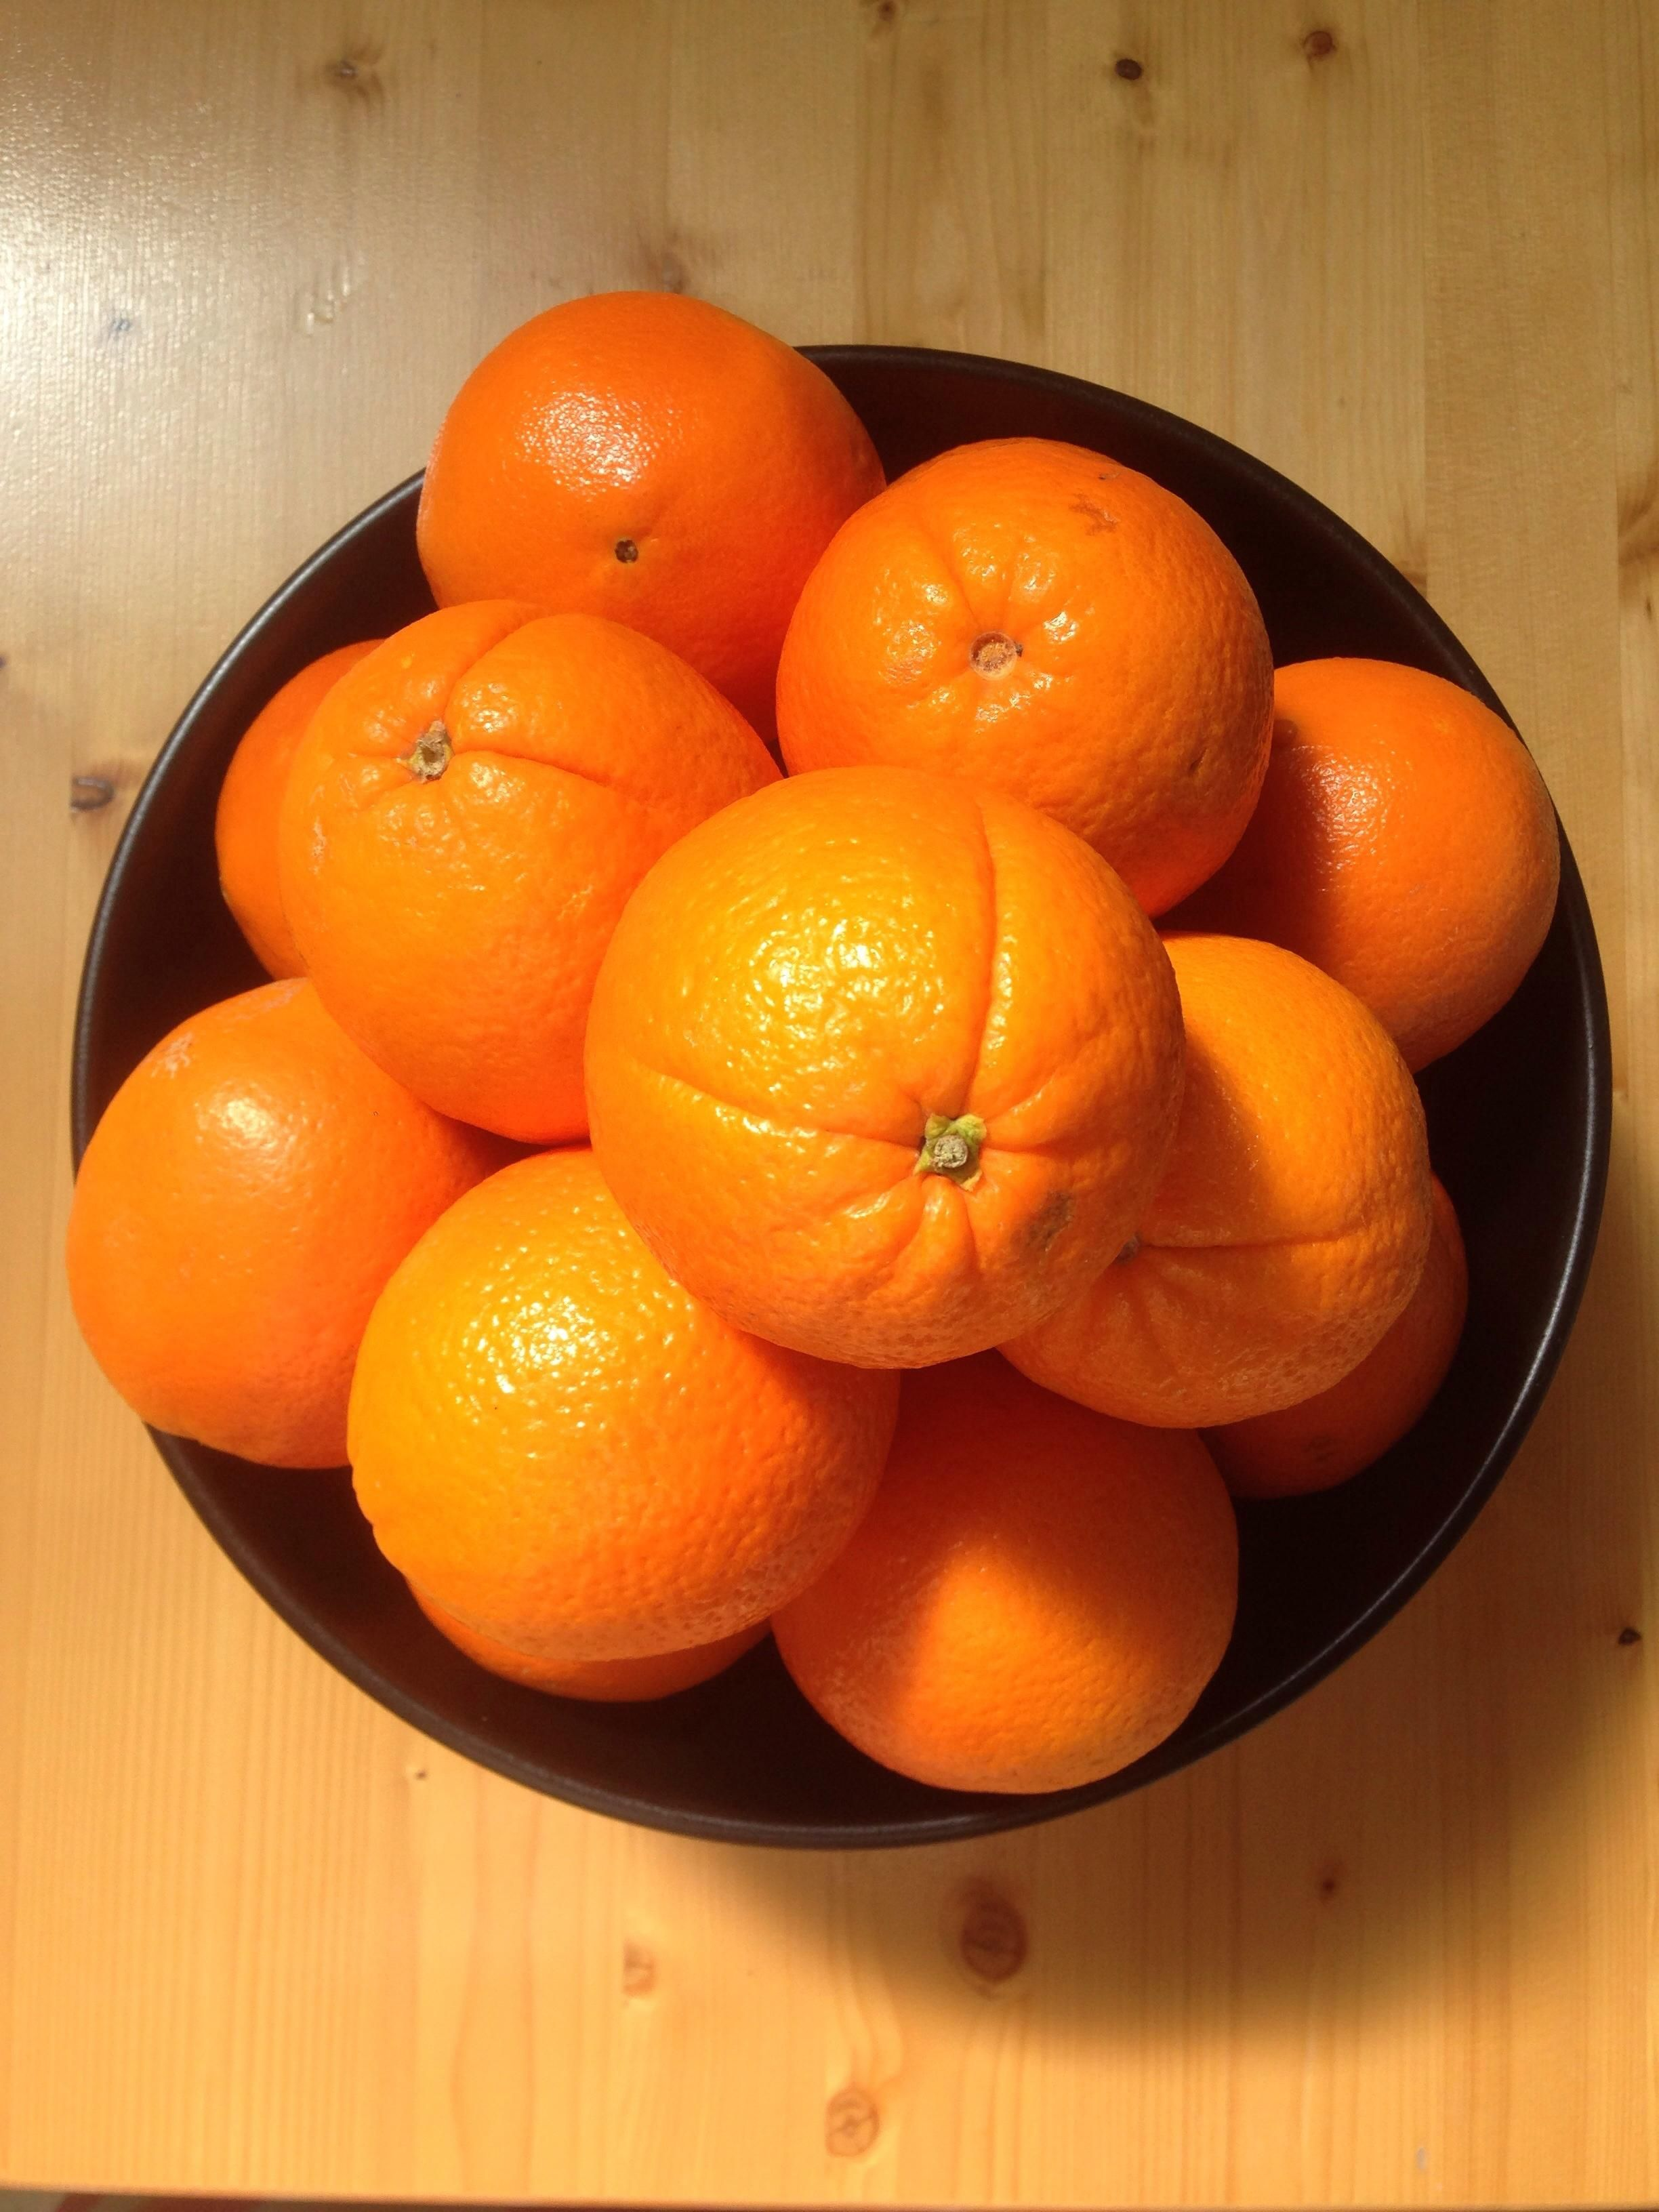 Orange Oranges is an Historic Controversy - Quirky Science